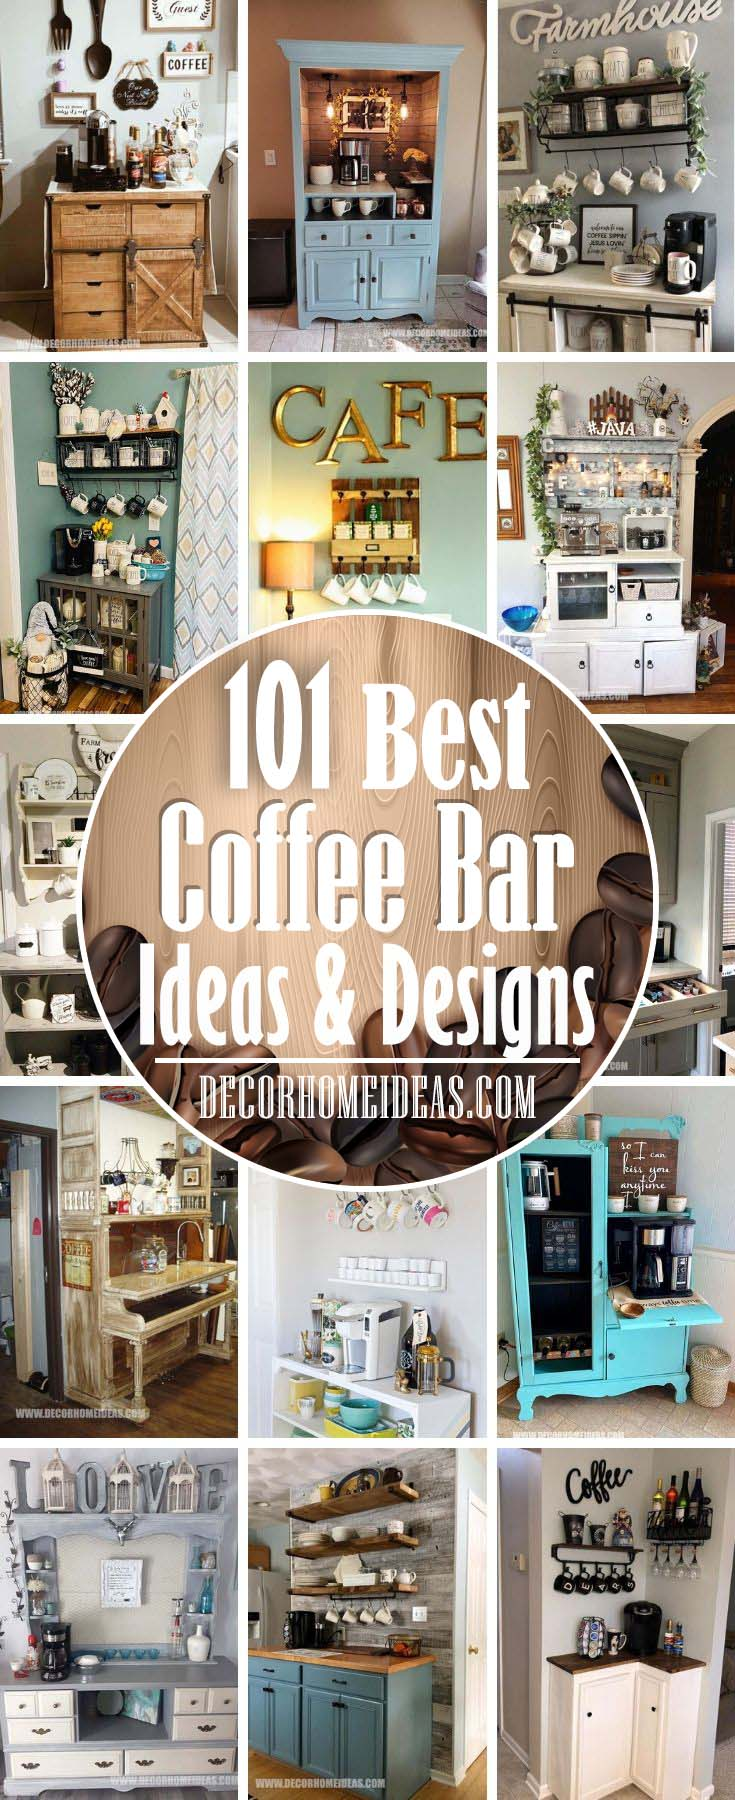 Best DIY Coffee Station Ideas and DIY Coffee Bar Ideas. If you are in love with coffee you need to see the best DIY Coffee station ideas that you can easily build at home #coffeebar #coffeestation #decorhomeideas